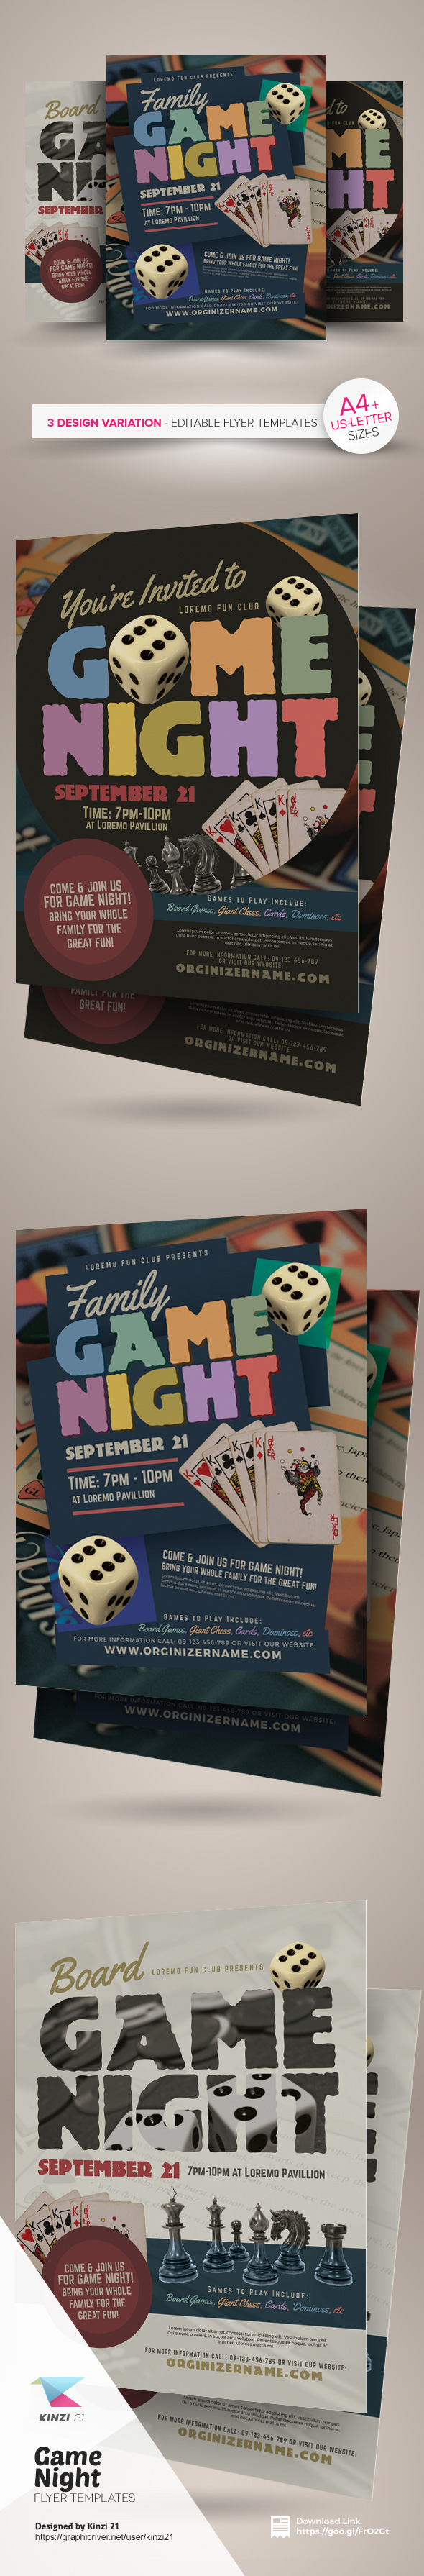 Game Night Flyer Templates Are Fully Editable Design Created For Sale On Graphic River More Info Of The And How To Get Sourcefile